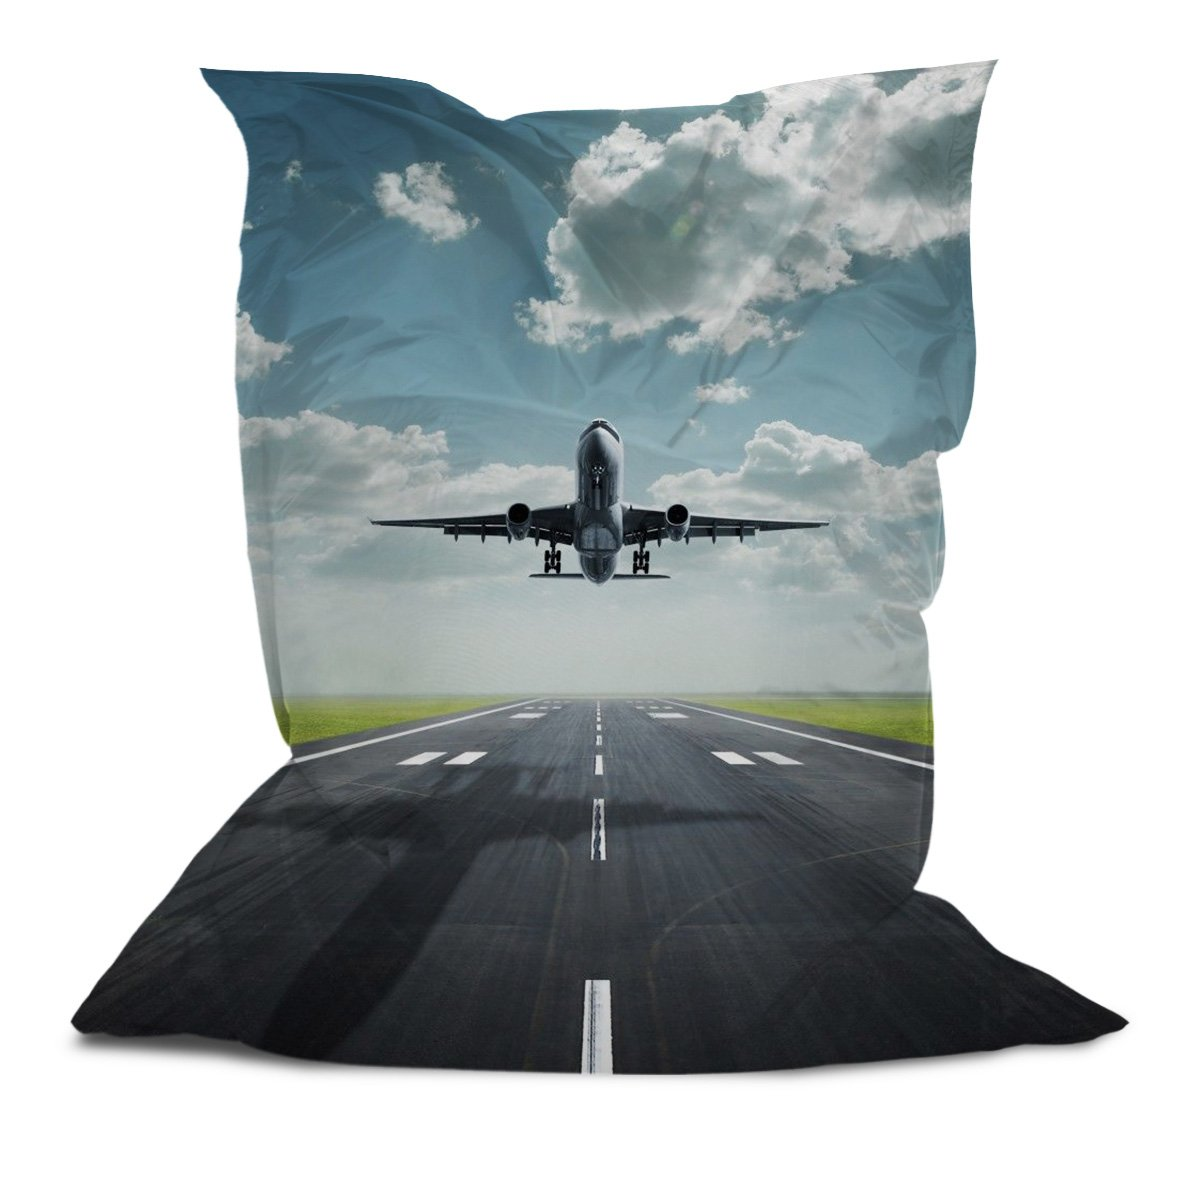 Branded Bean Bag with Printed Plane (5' x 4.4')